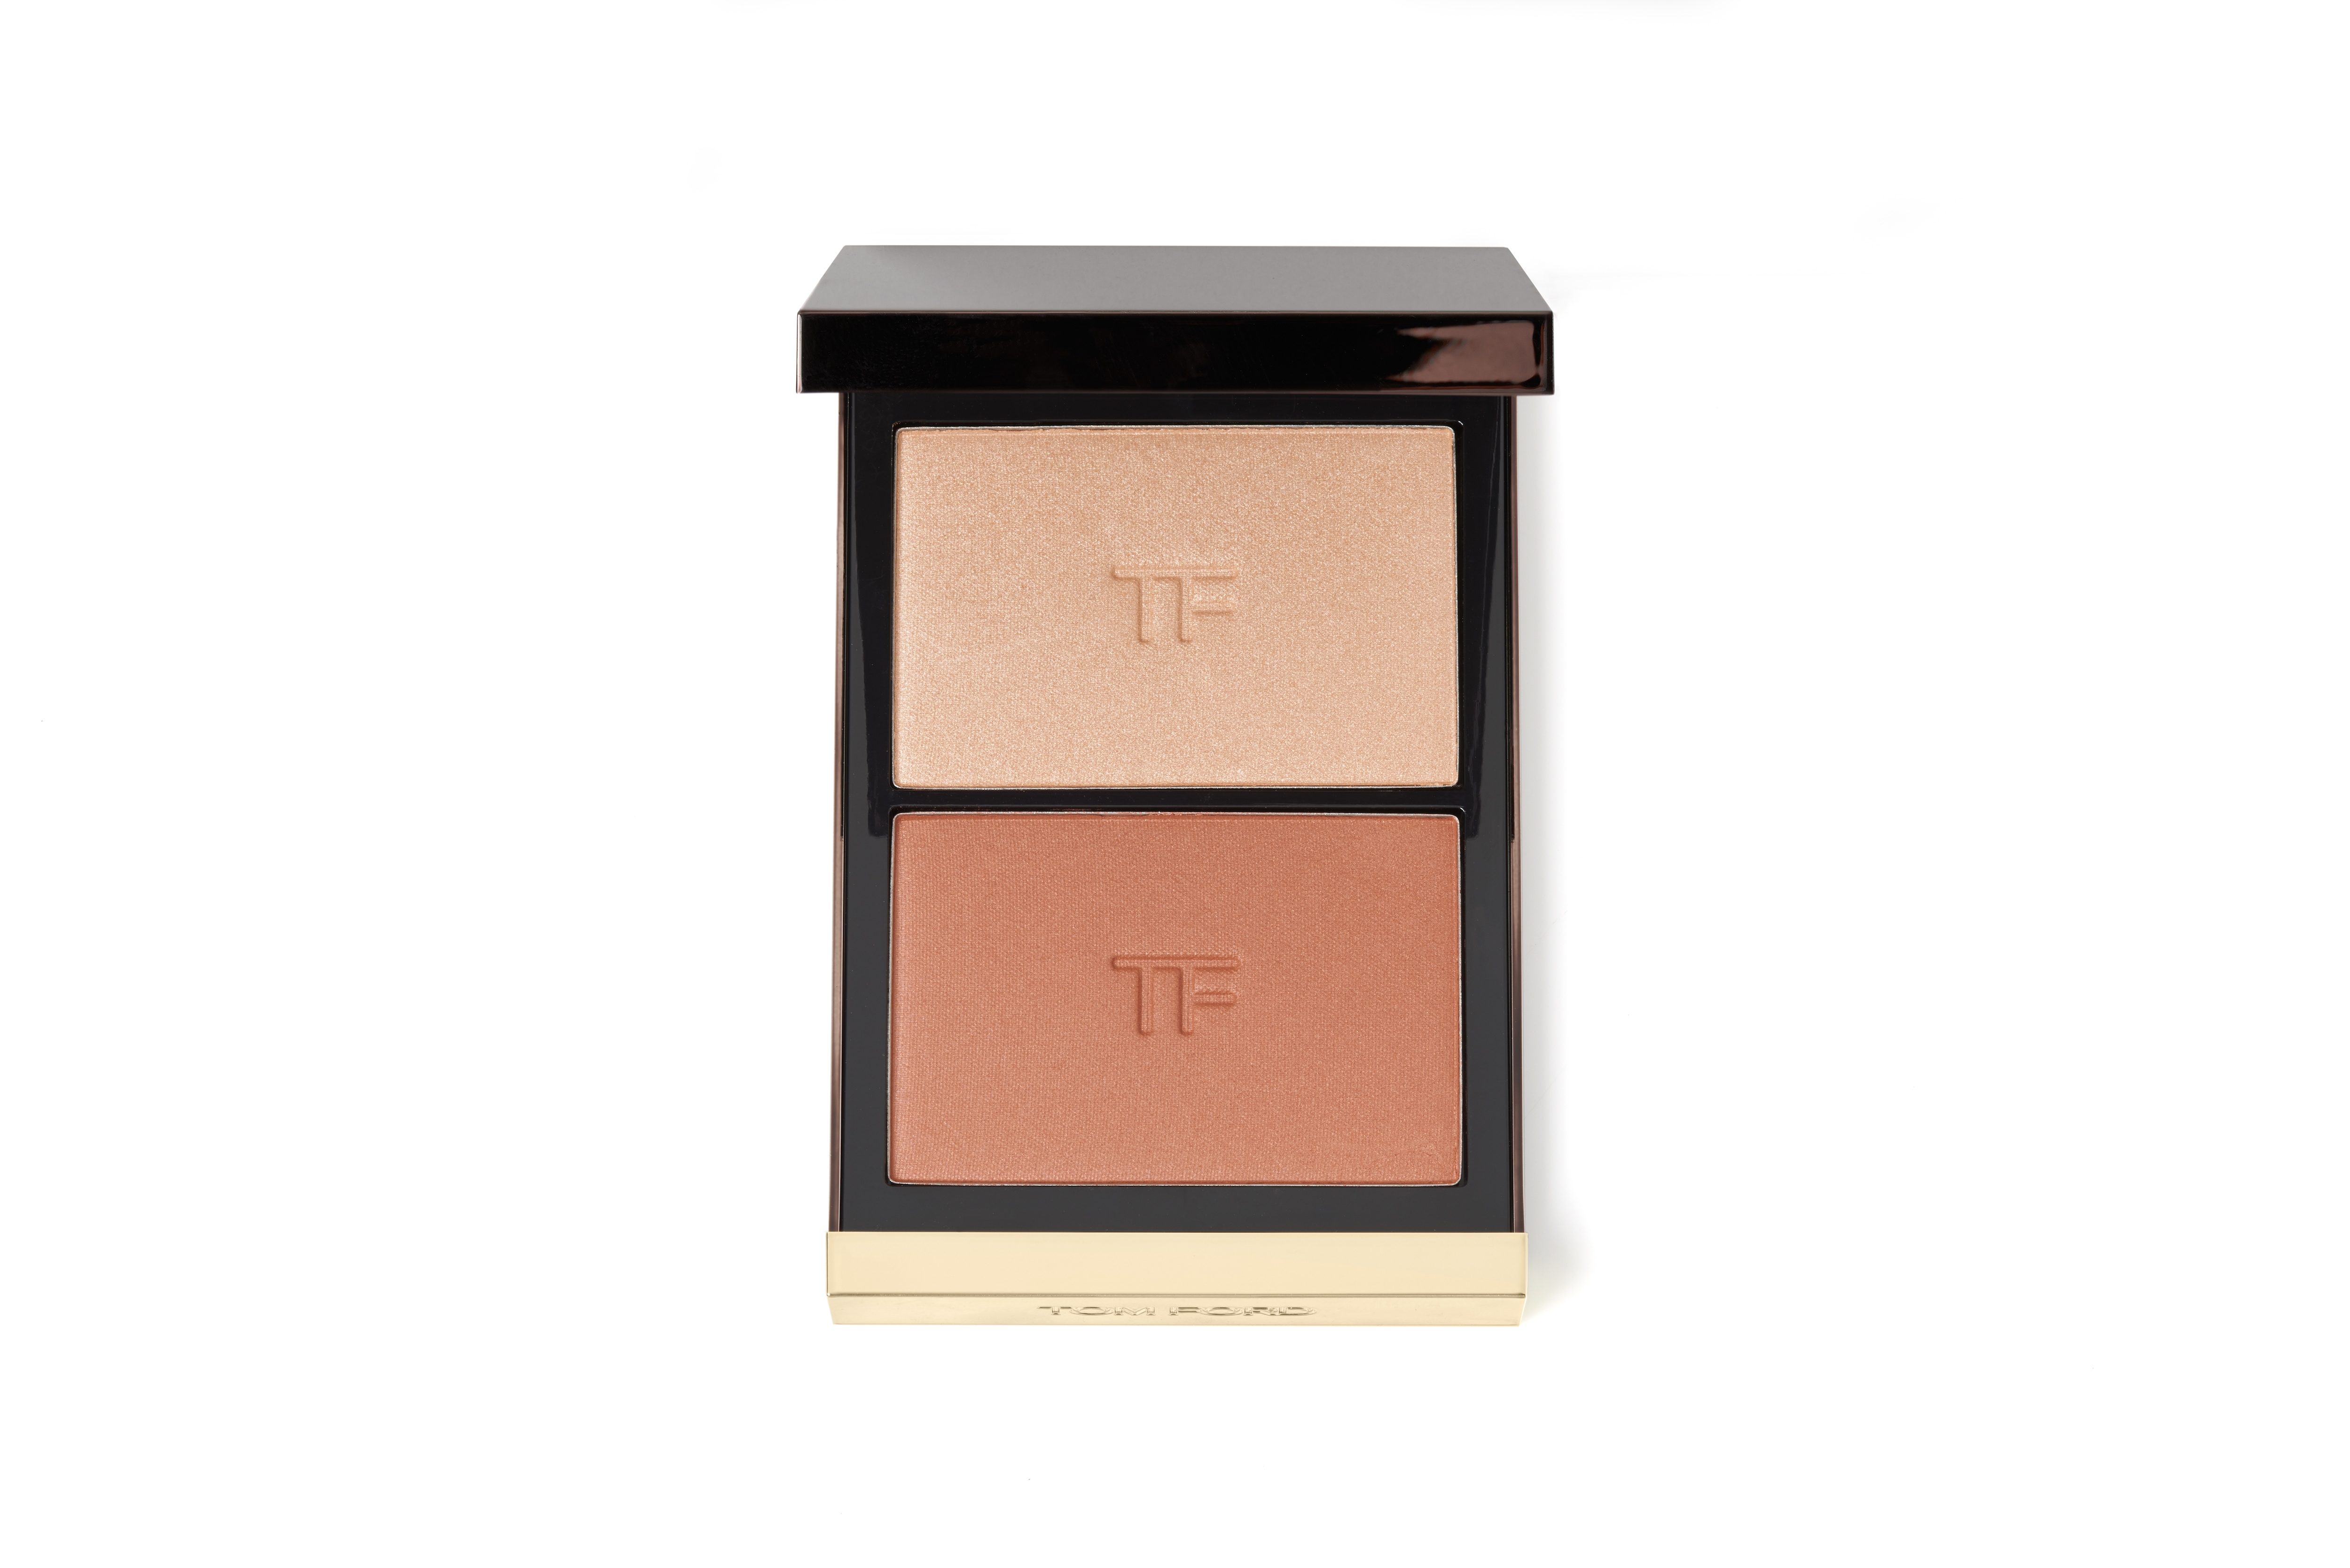 Kendall Jenner beauty look: Tom Ford Cheek Color Duo